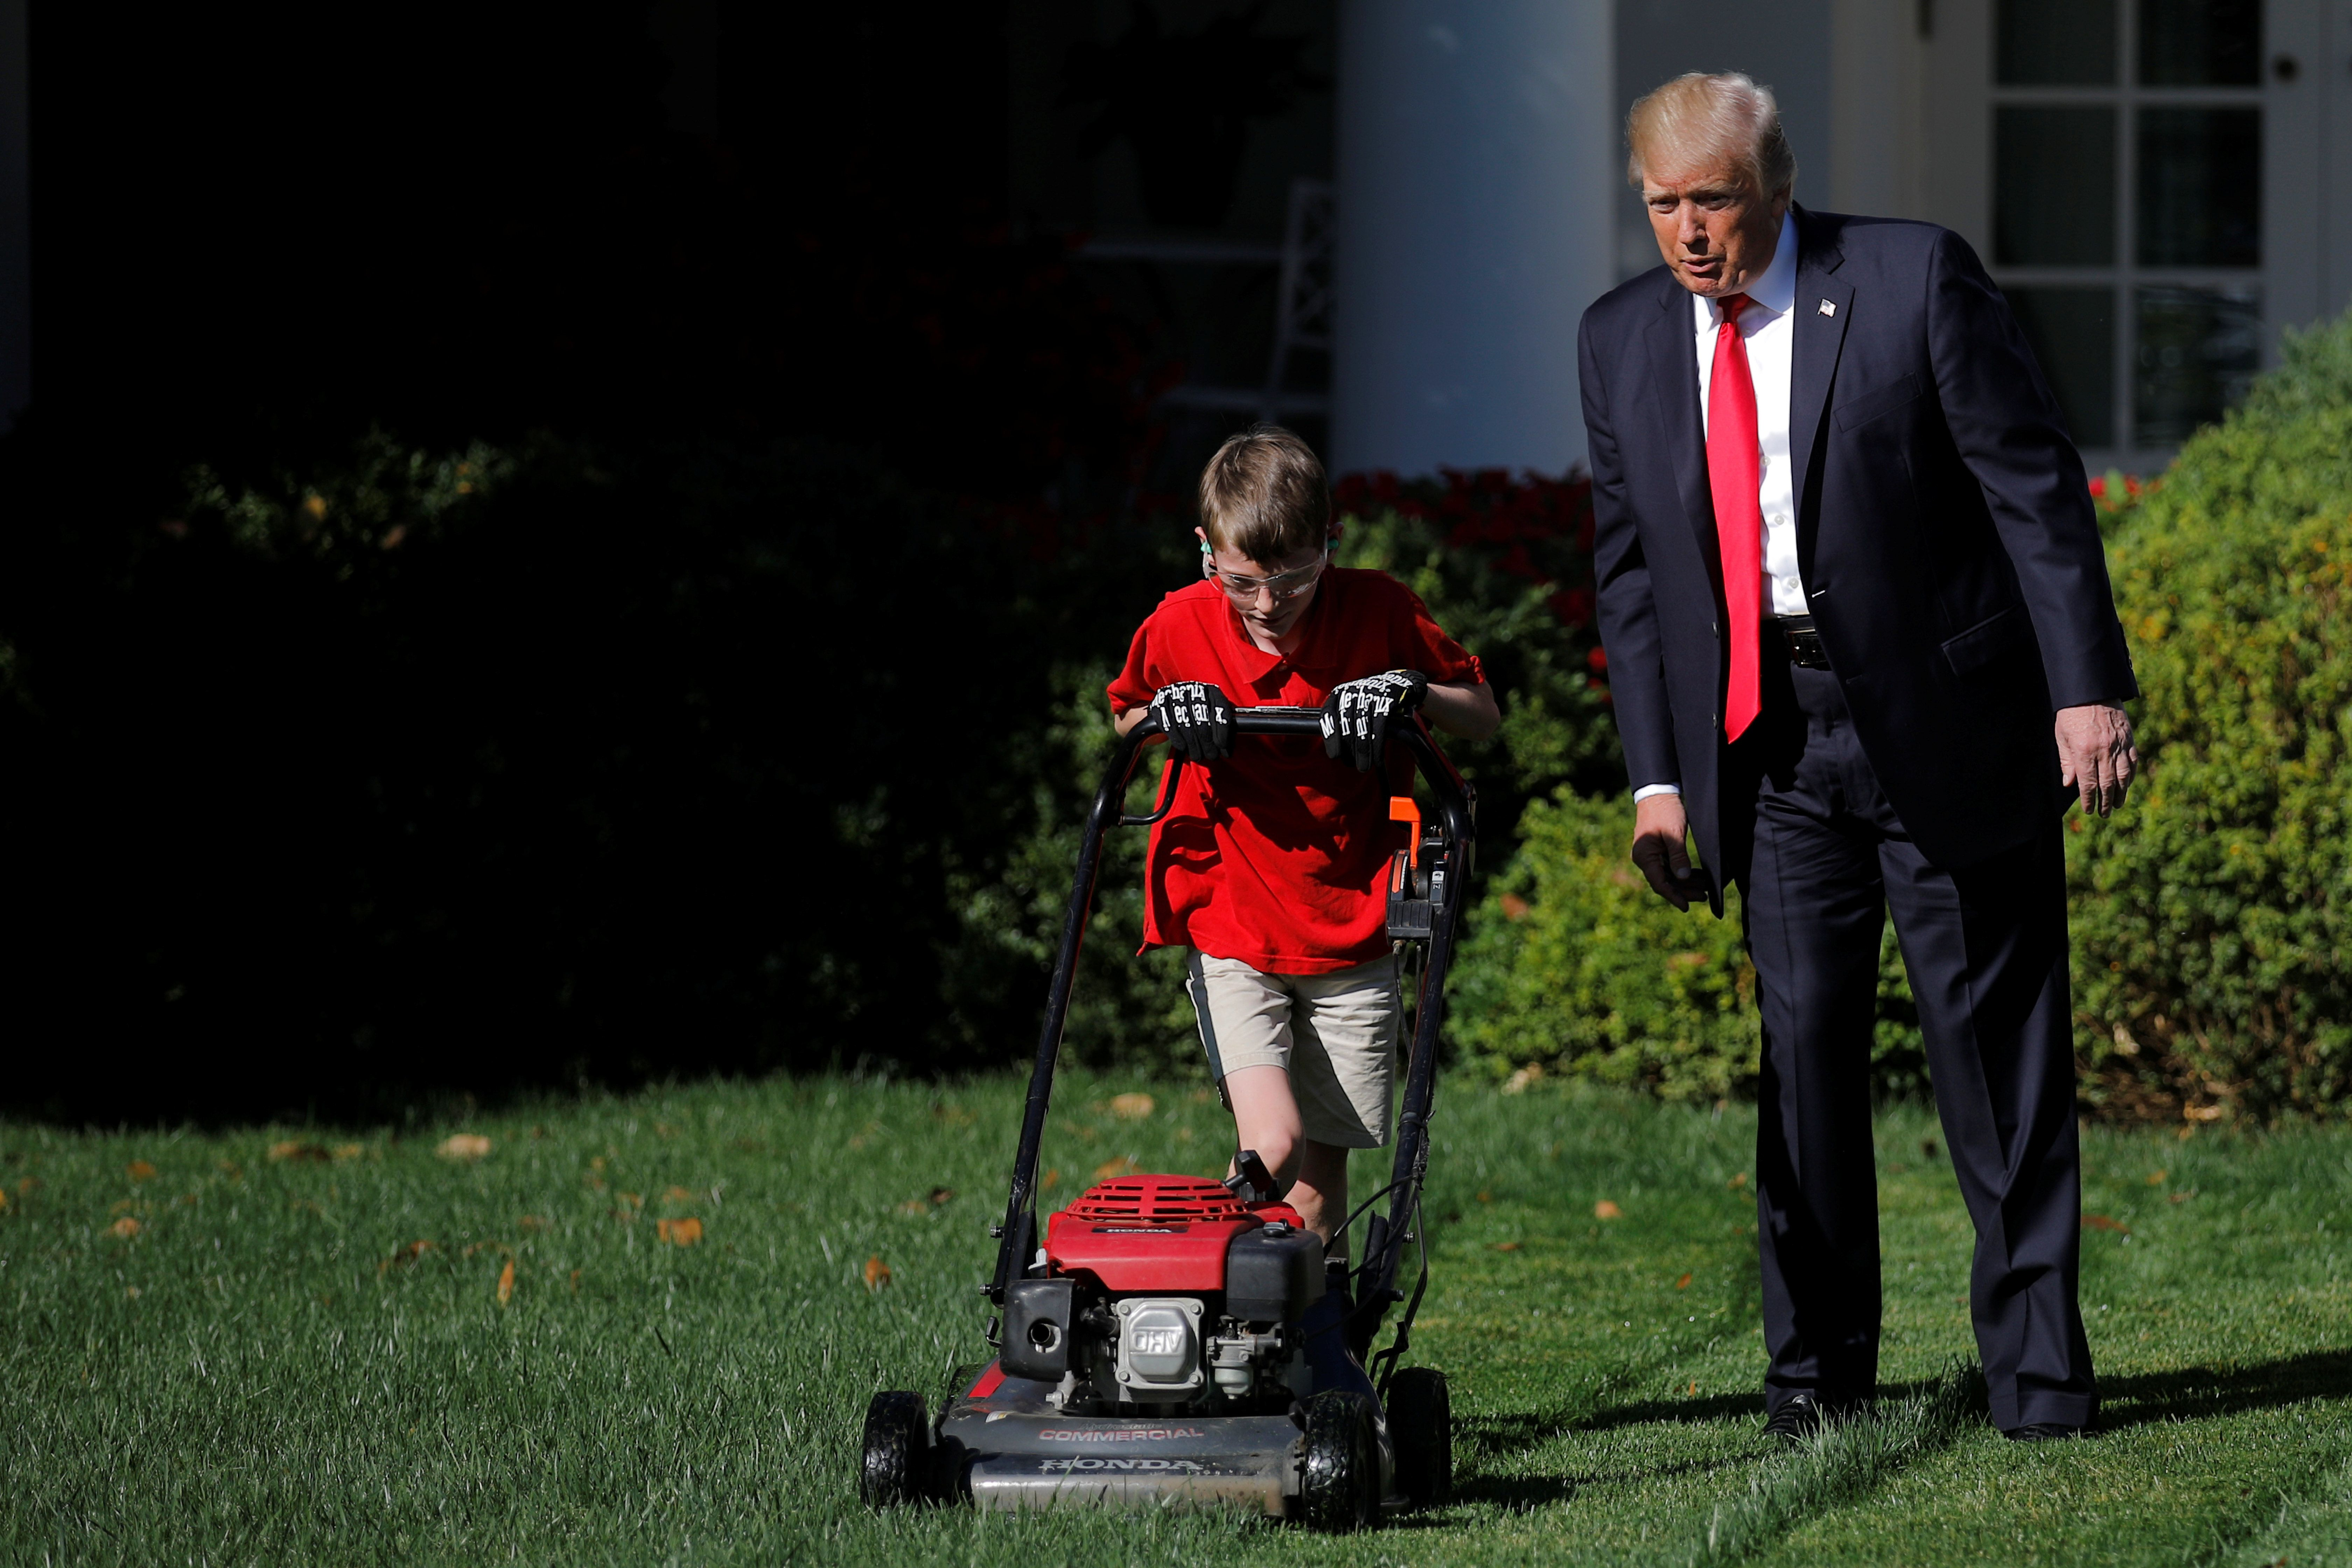 U.S. President Donald Trump looks on as 11-years-old Frank Giaccio cuts the Rose Garden grass at the White House in Washington, U.S., September 15, 2017. Frank, who wrote a letter to Trump offering to mow the White House lawn, was invited to work for a day at the White House along the National Park Service staff. REUTERS/Carlos Barria